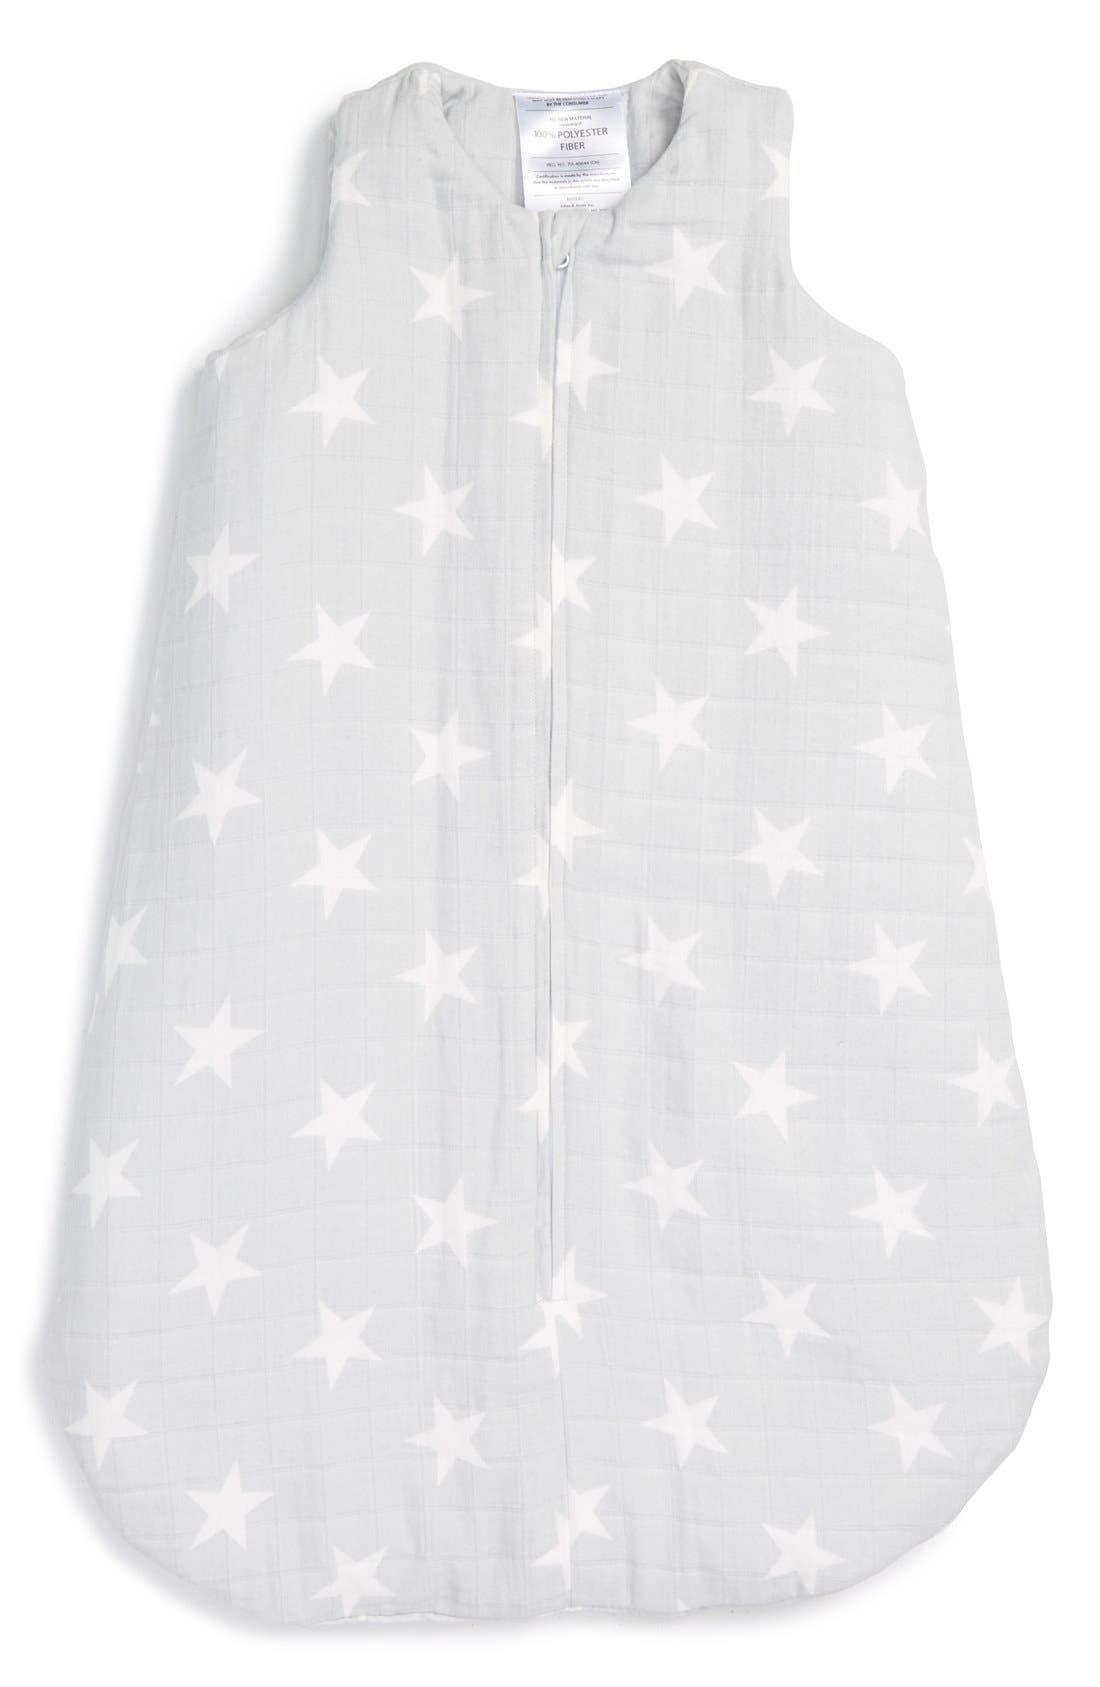 Main Image - aden + anais Flannel & Muslin Wearable Cold Temperature Blanket (Baby)